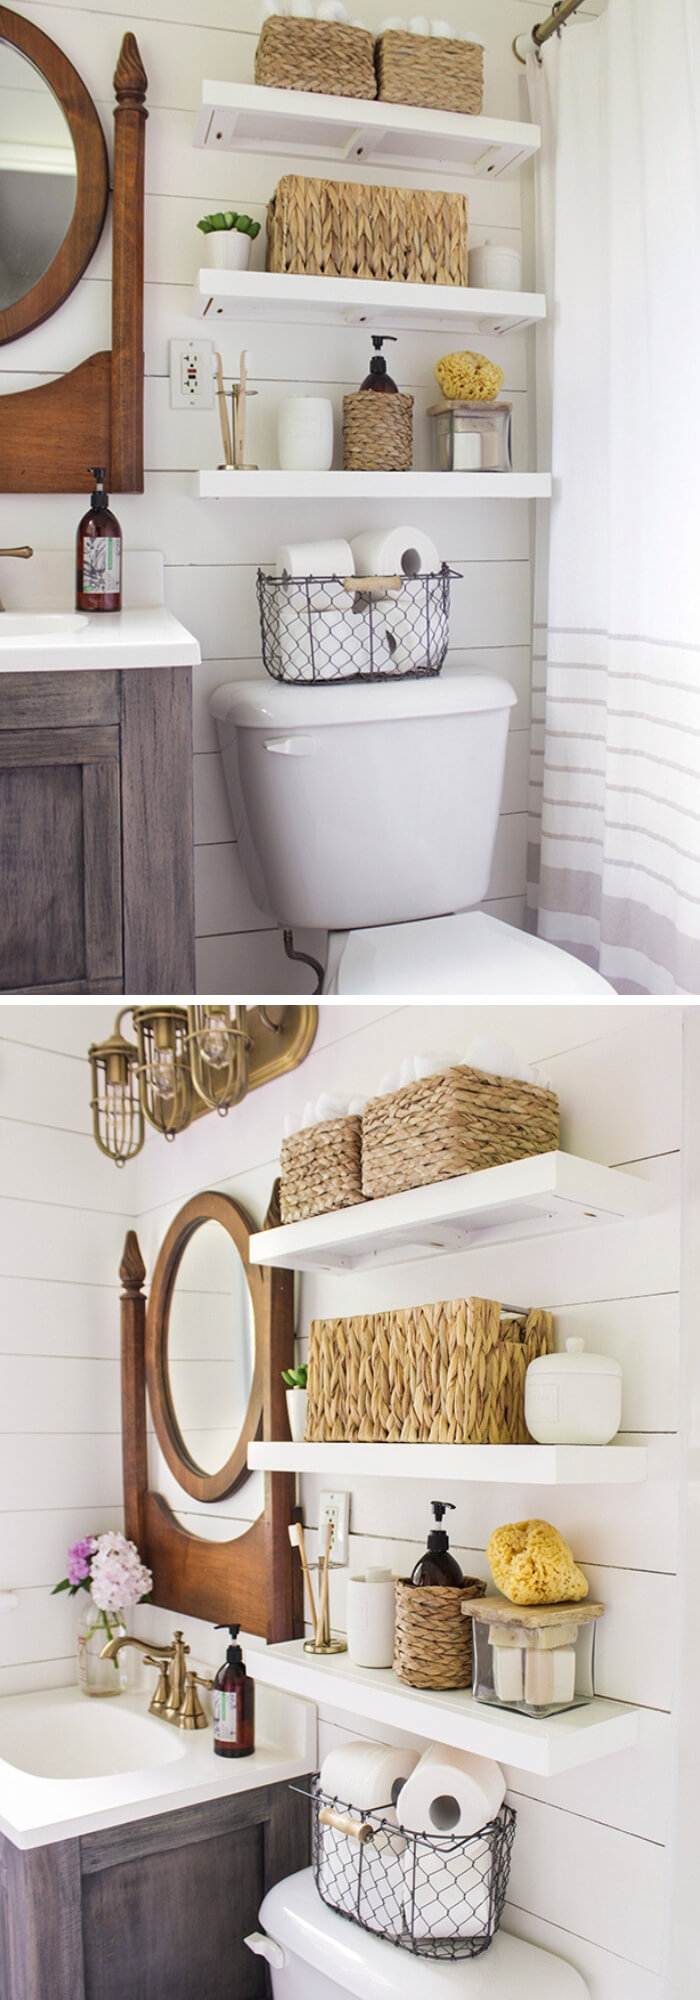 Floating Shelves for master bathroom | Best Over the Toilet Storage Ideas for Bathroom